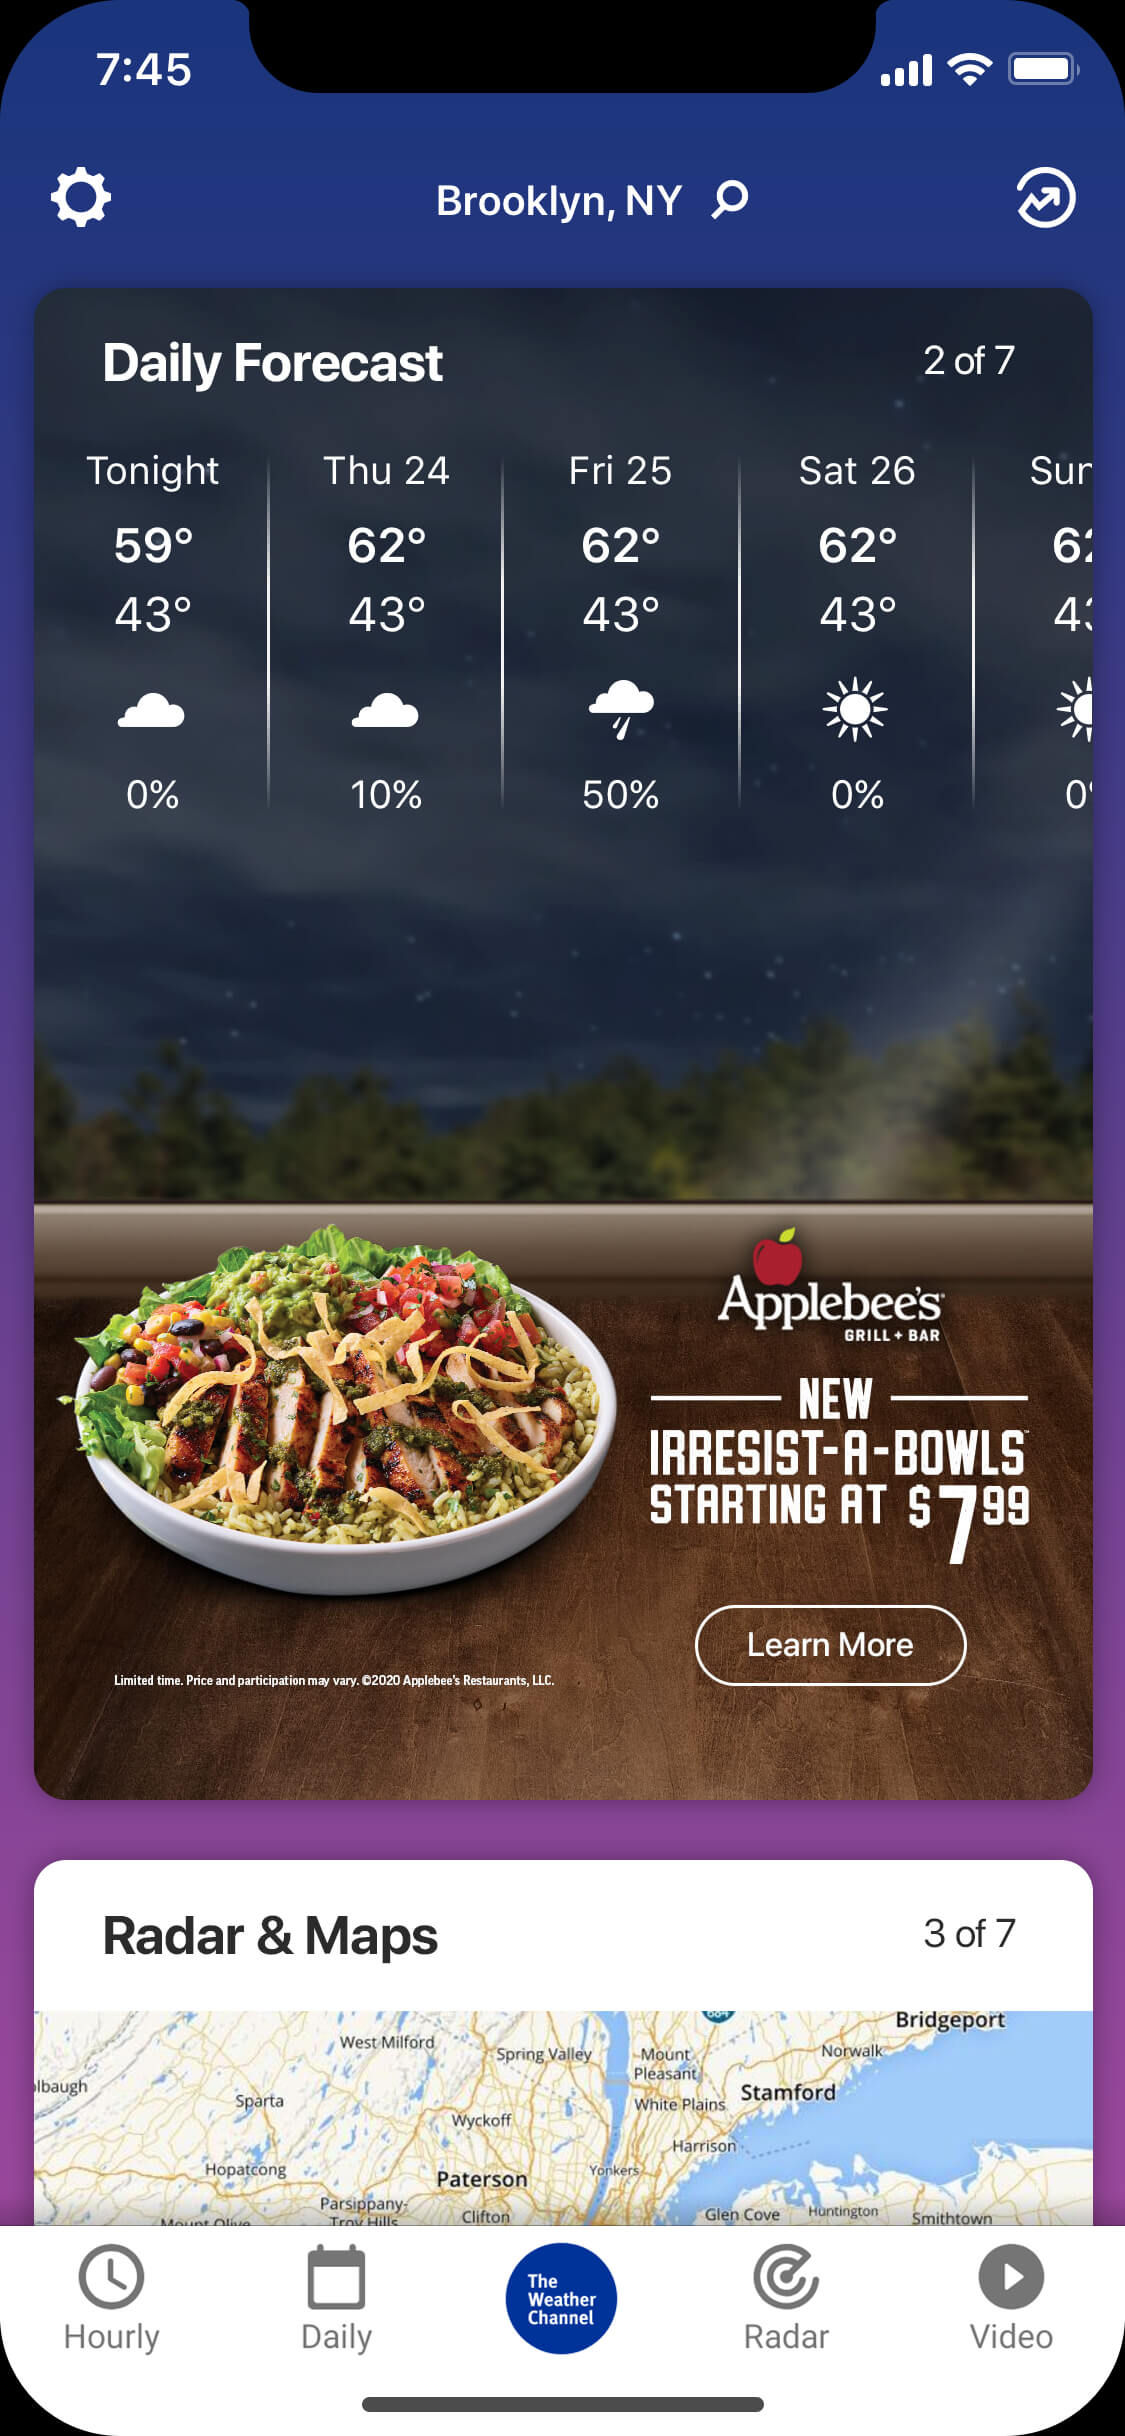 applebees-bowls-if_cloudy-night